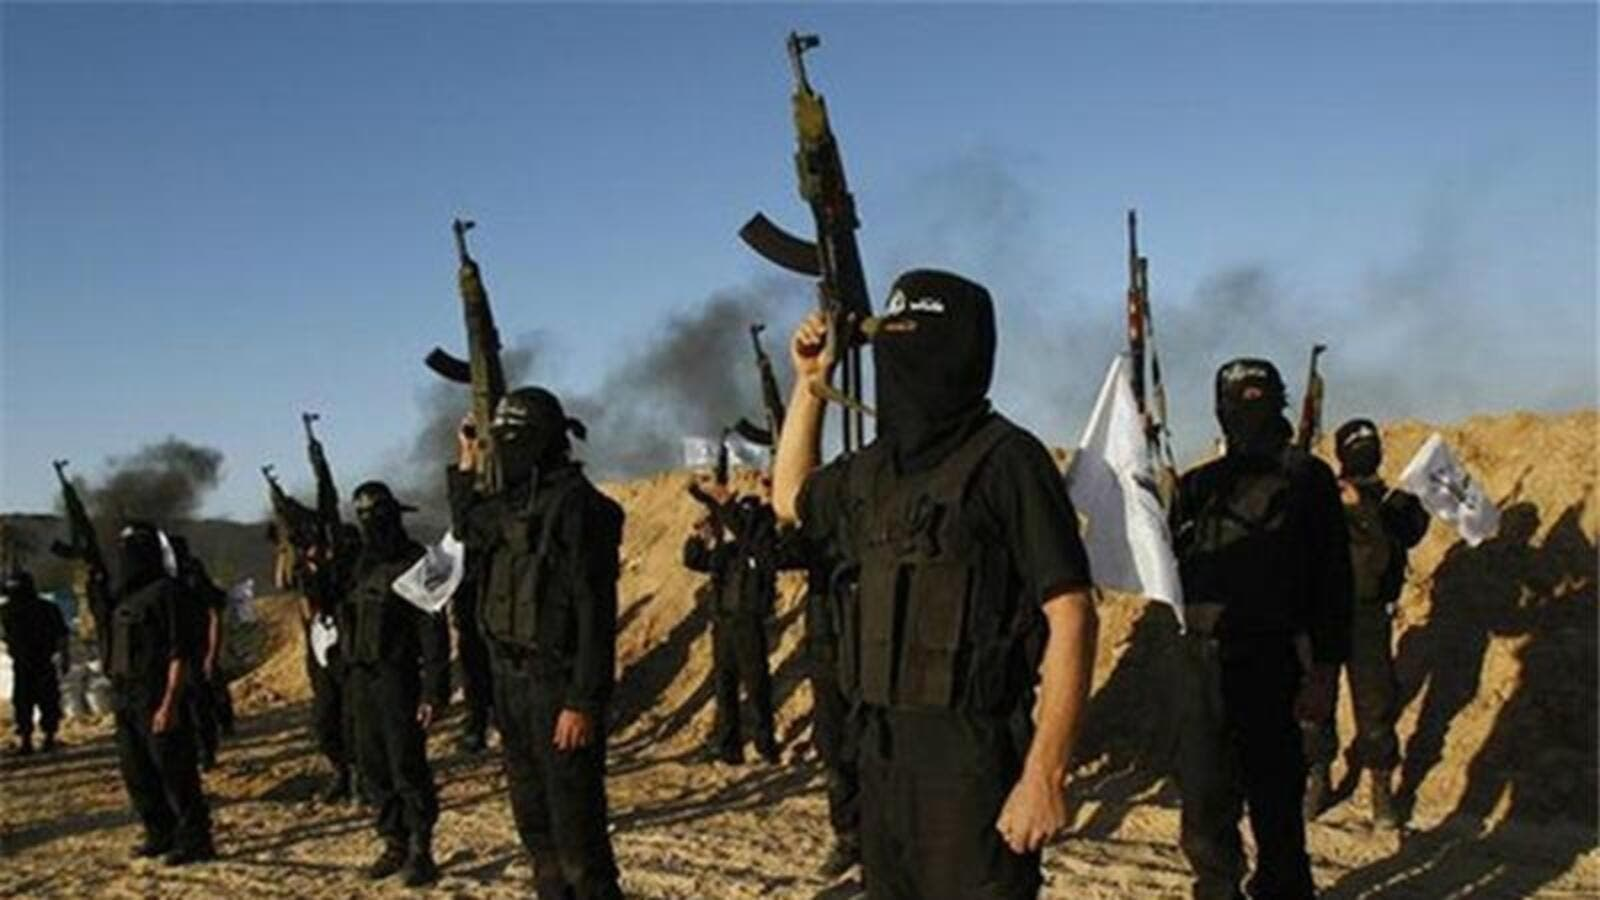 Daesh-affiliated 'Sinai Province' claims responsibility for Egypt